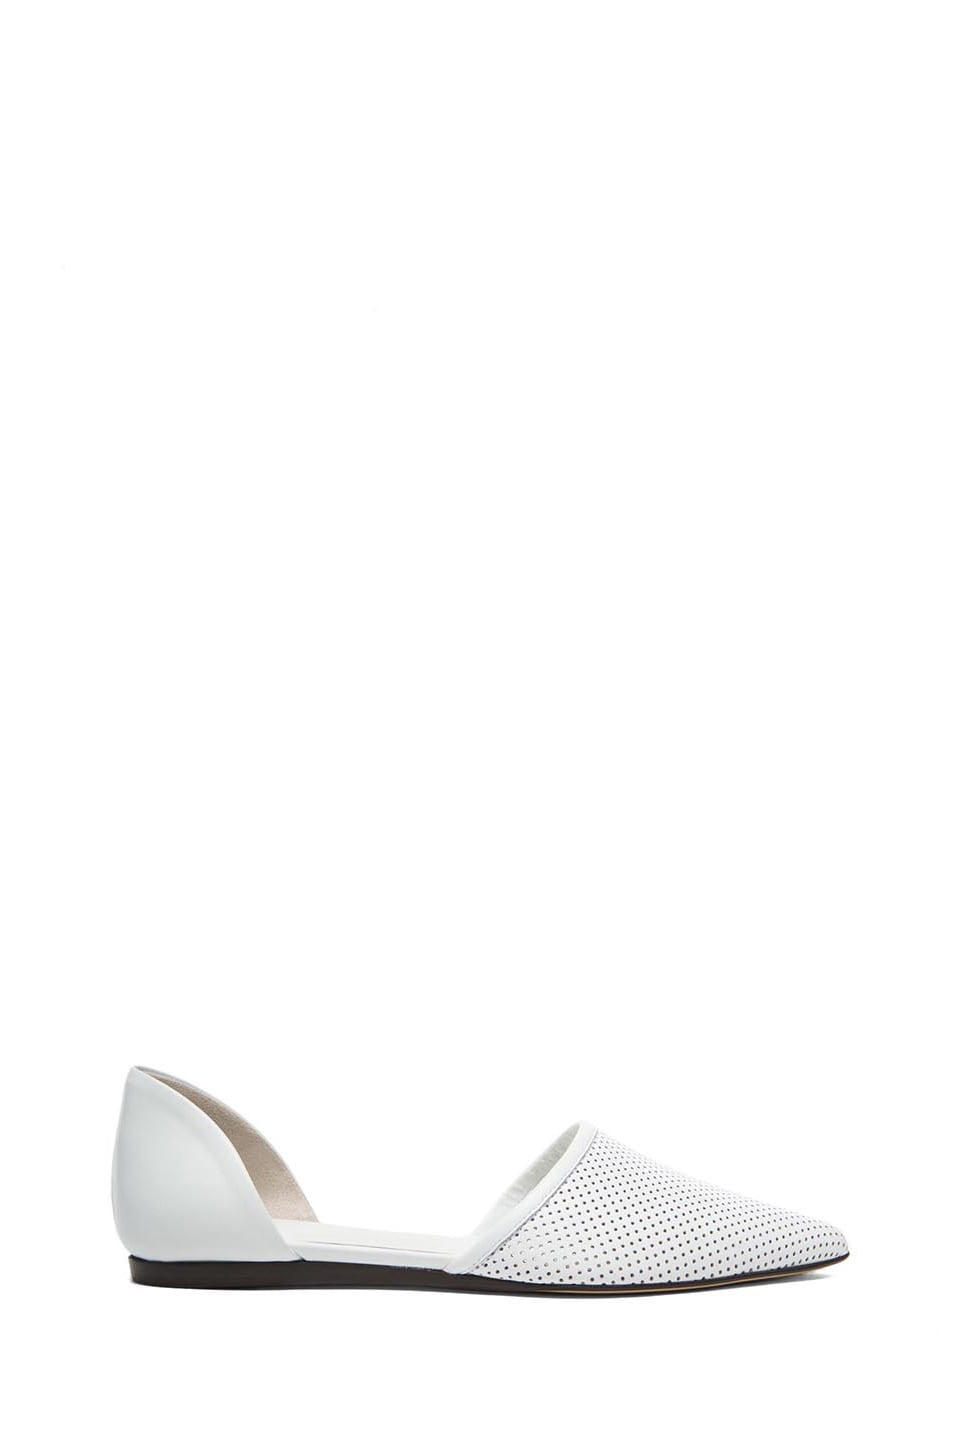 Image 1 of Jenni Kayne Perforated Leather Flats in White